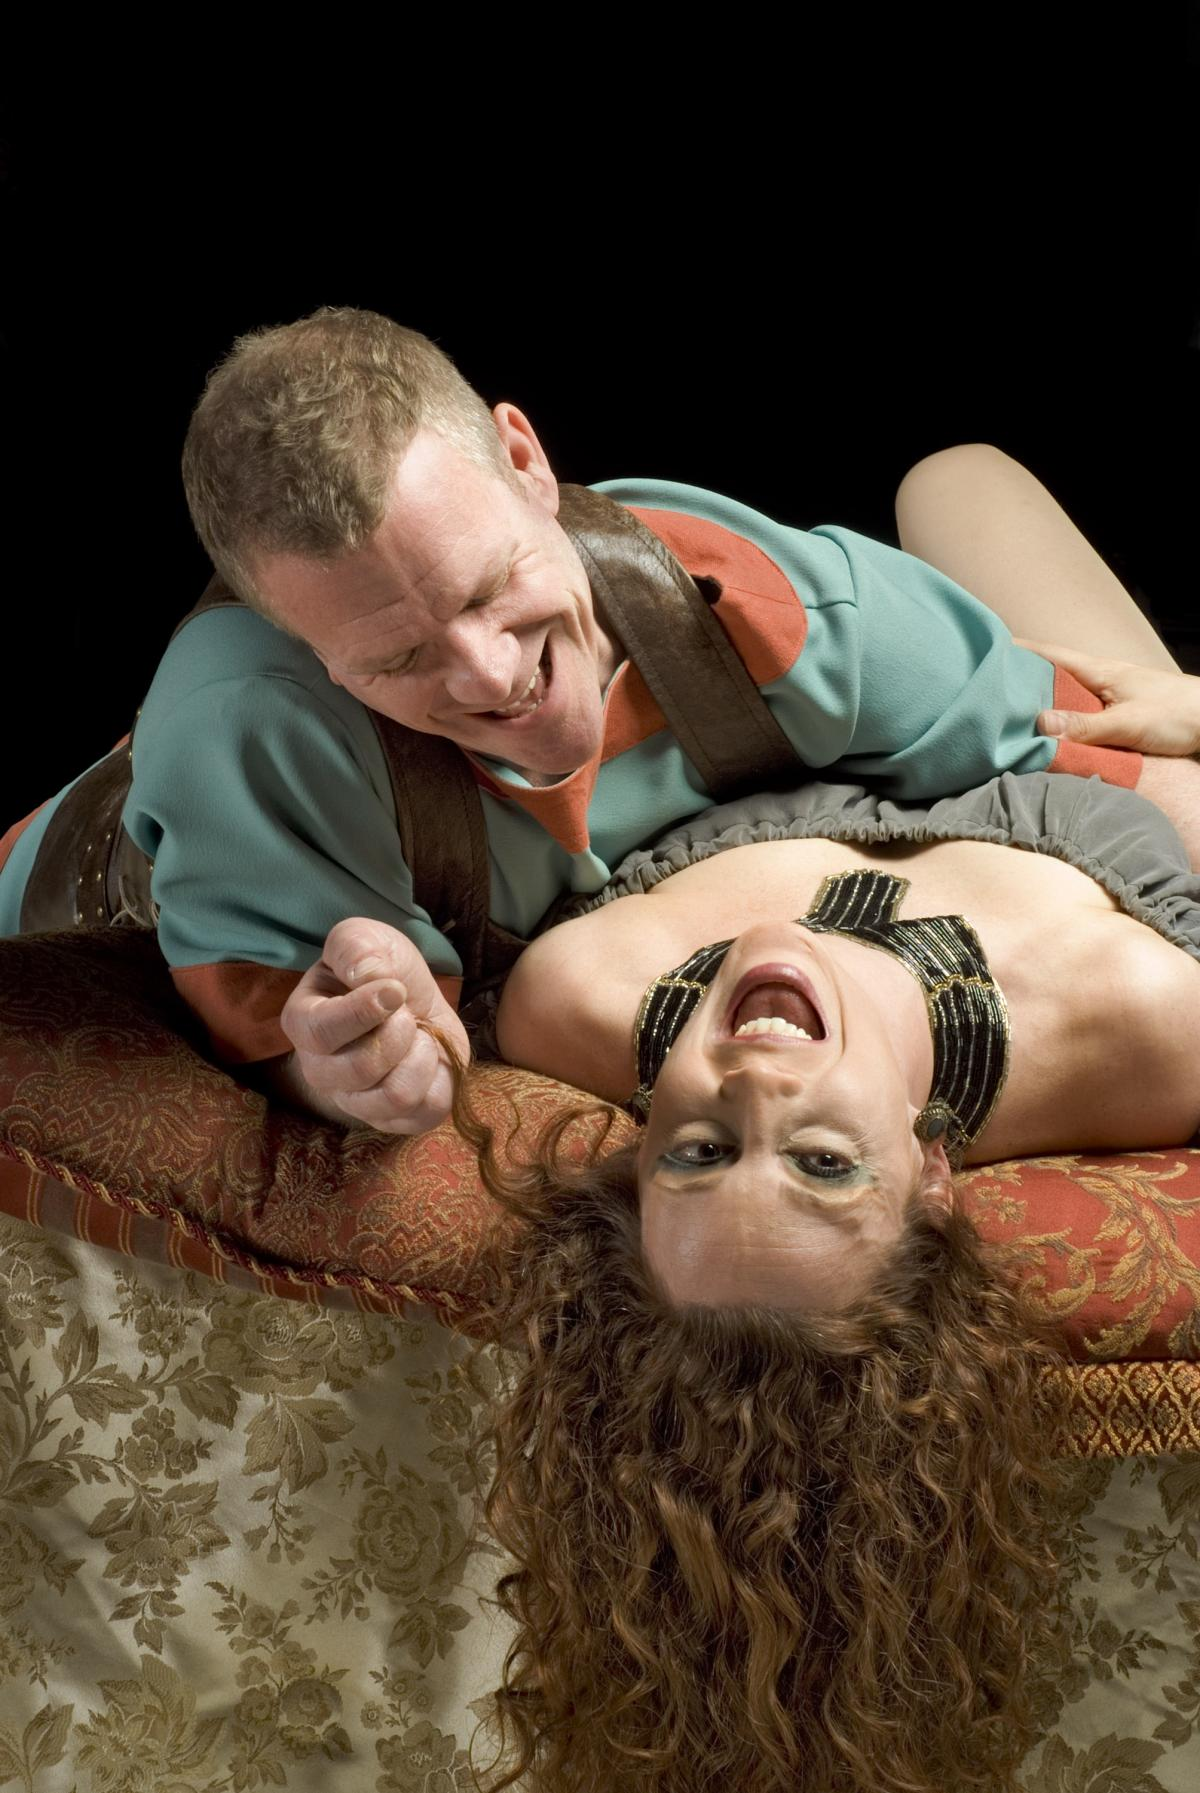 Photograph of man and woman laying down, woman's head thrown back, both laughing